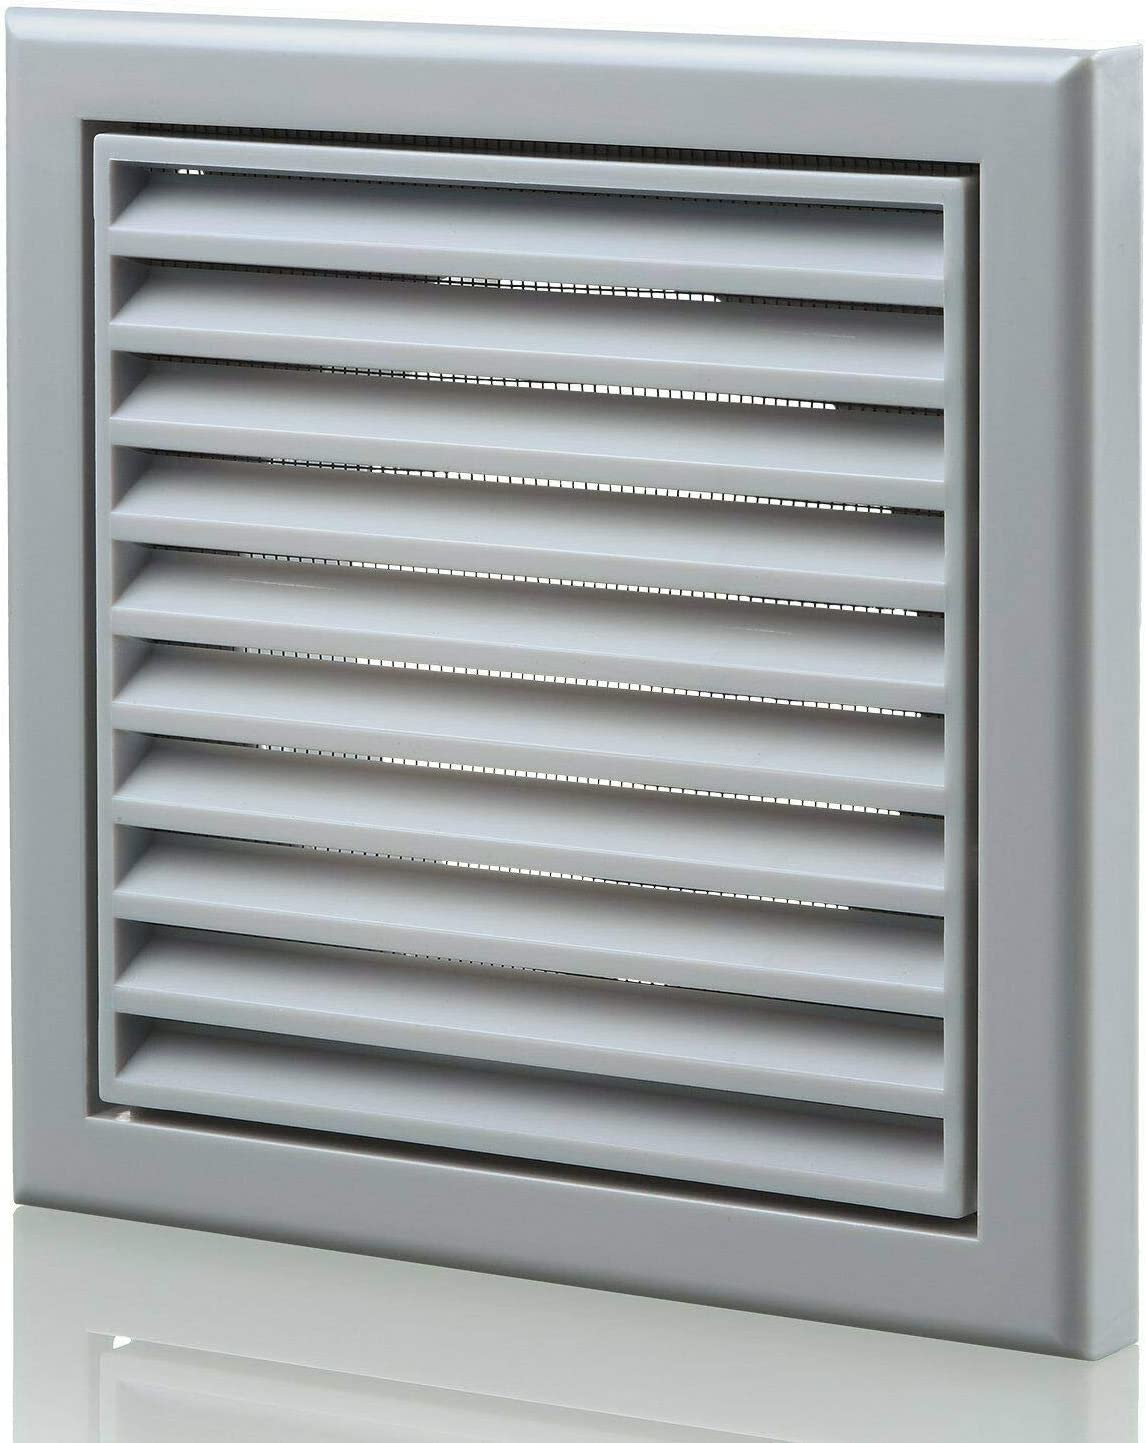 150 mm Robust Outside Wall Hole Cover Vent Fitting with Fly Screen for Caravan Shed Bathroom Shower Kitchen Garage Shed for Air Circulation Odour Removal Extractor Fan Cooker Hood Oven Vent